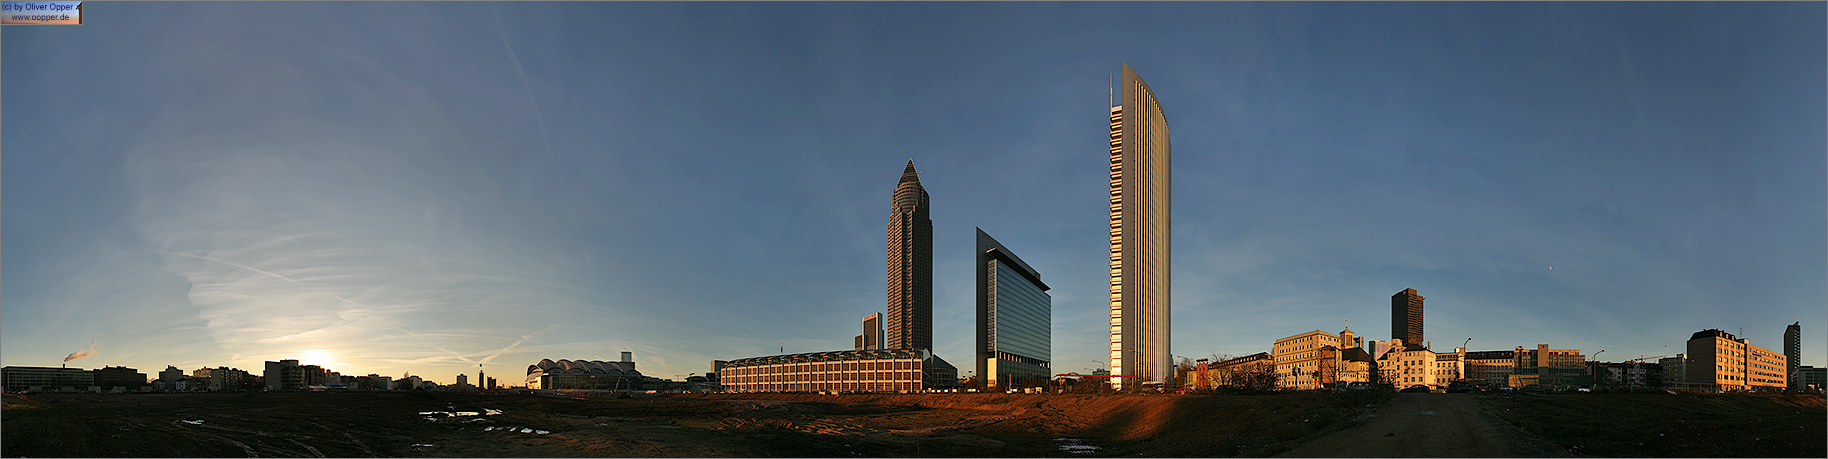 Panorama Frankfurt - Messegel�nde - p057 - (c) by Oliver Opper